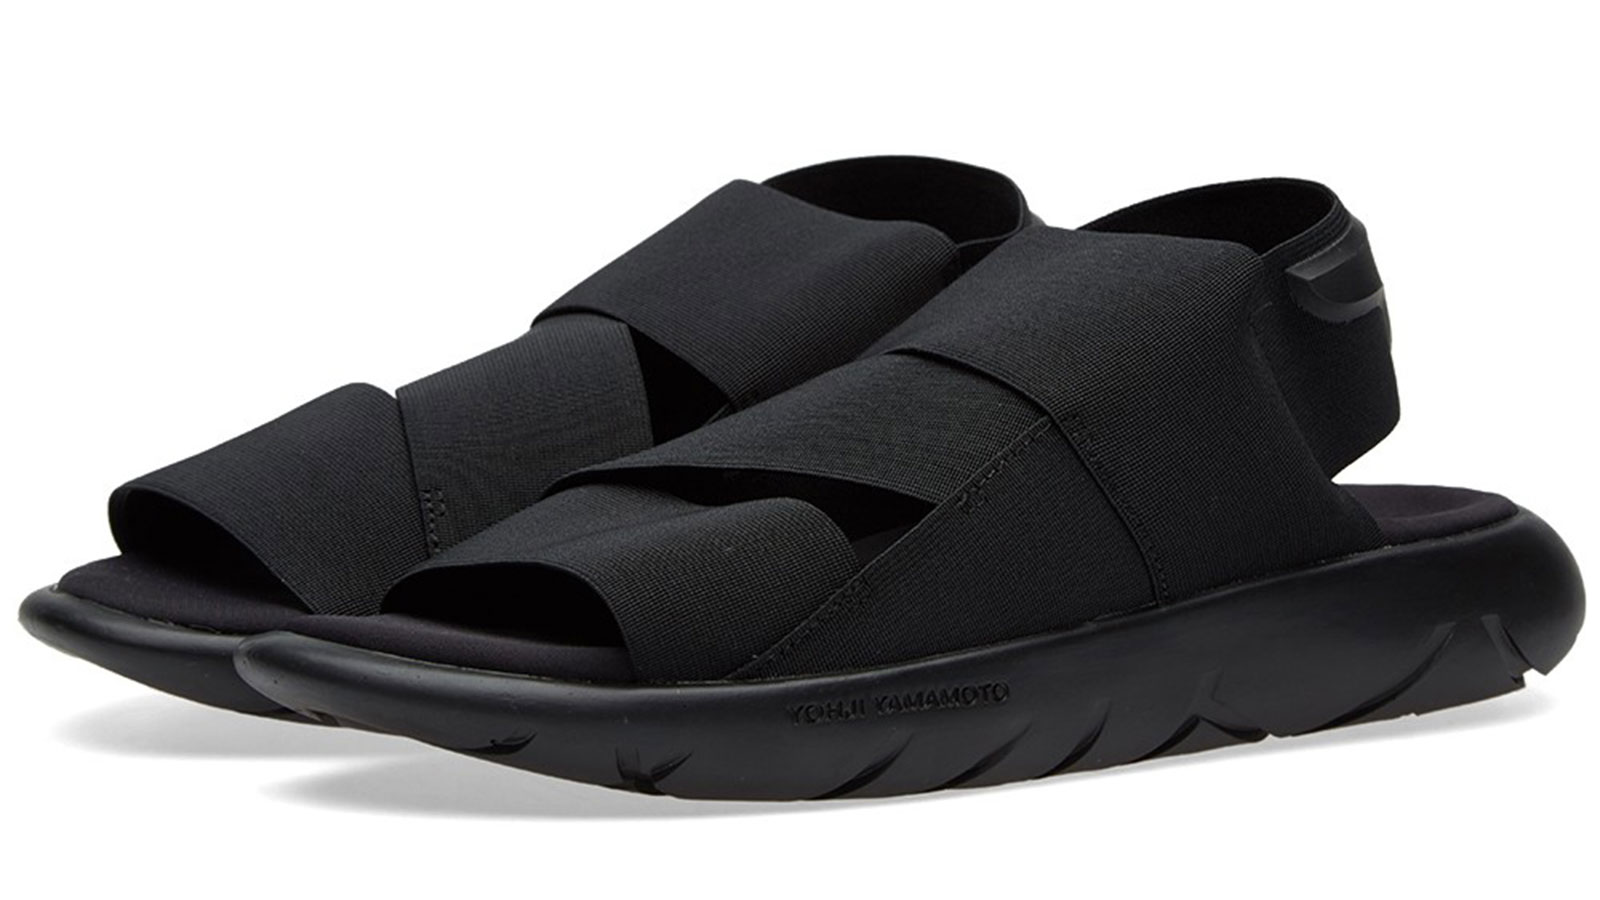 Y-3 QASA SANDAL | best sandals for men